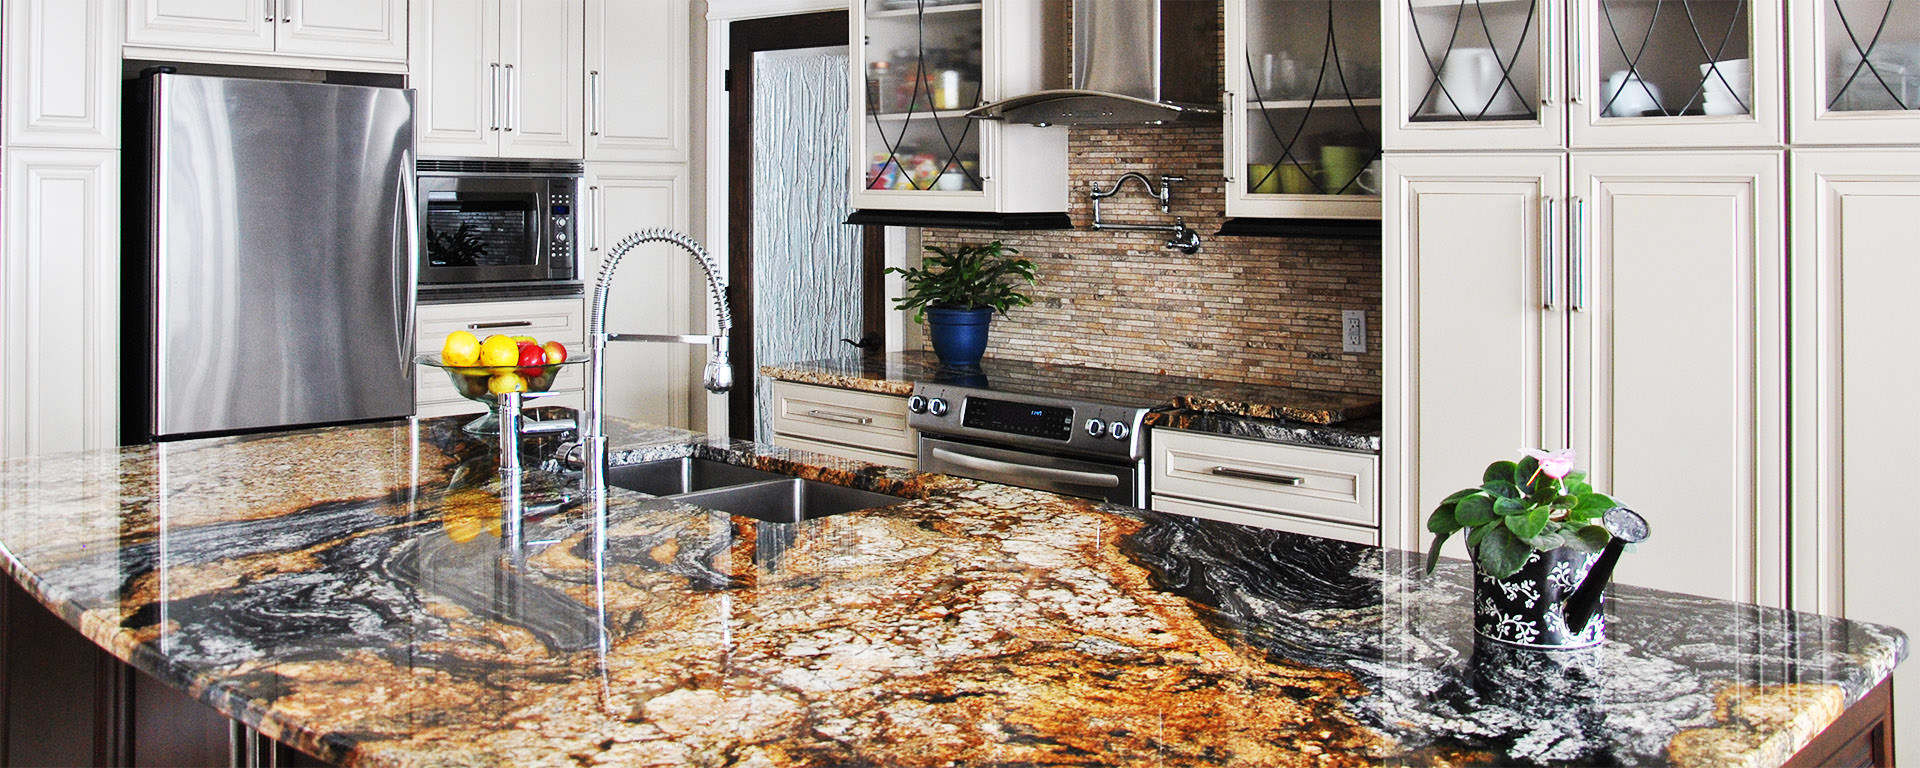 Emerald Pearl Granite Kitchen Granite Kitchen Countertops Inspiration Gallery